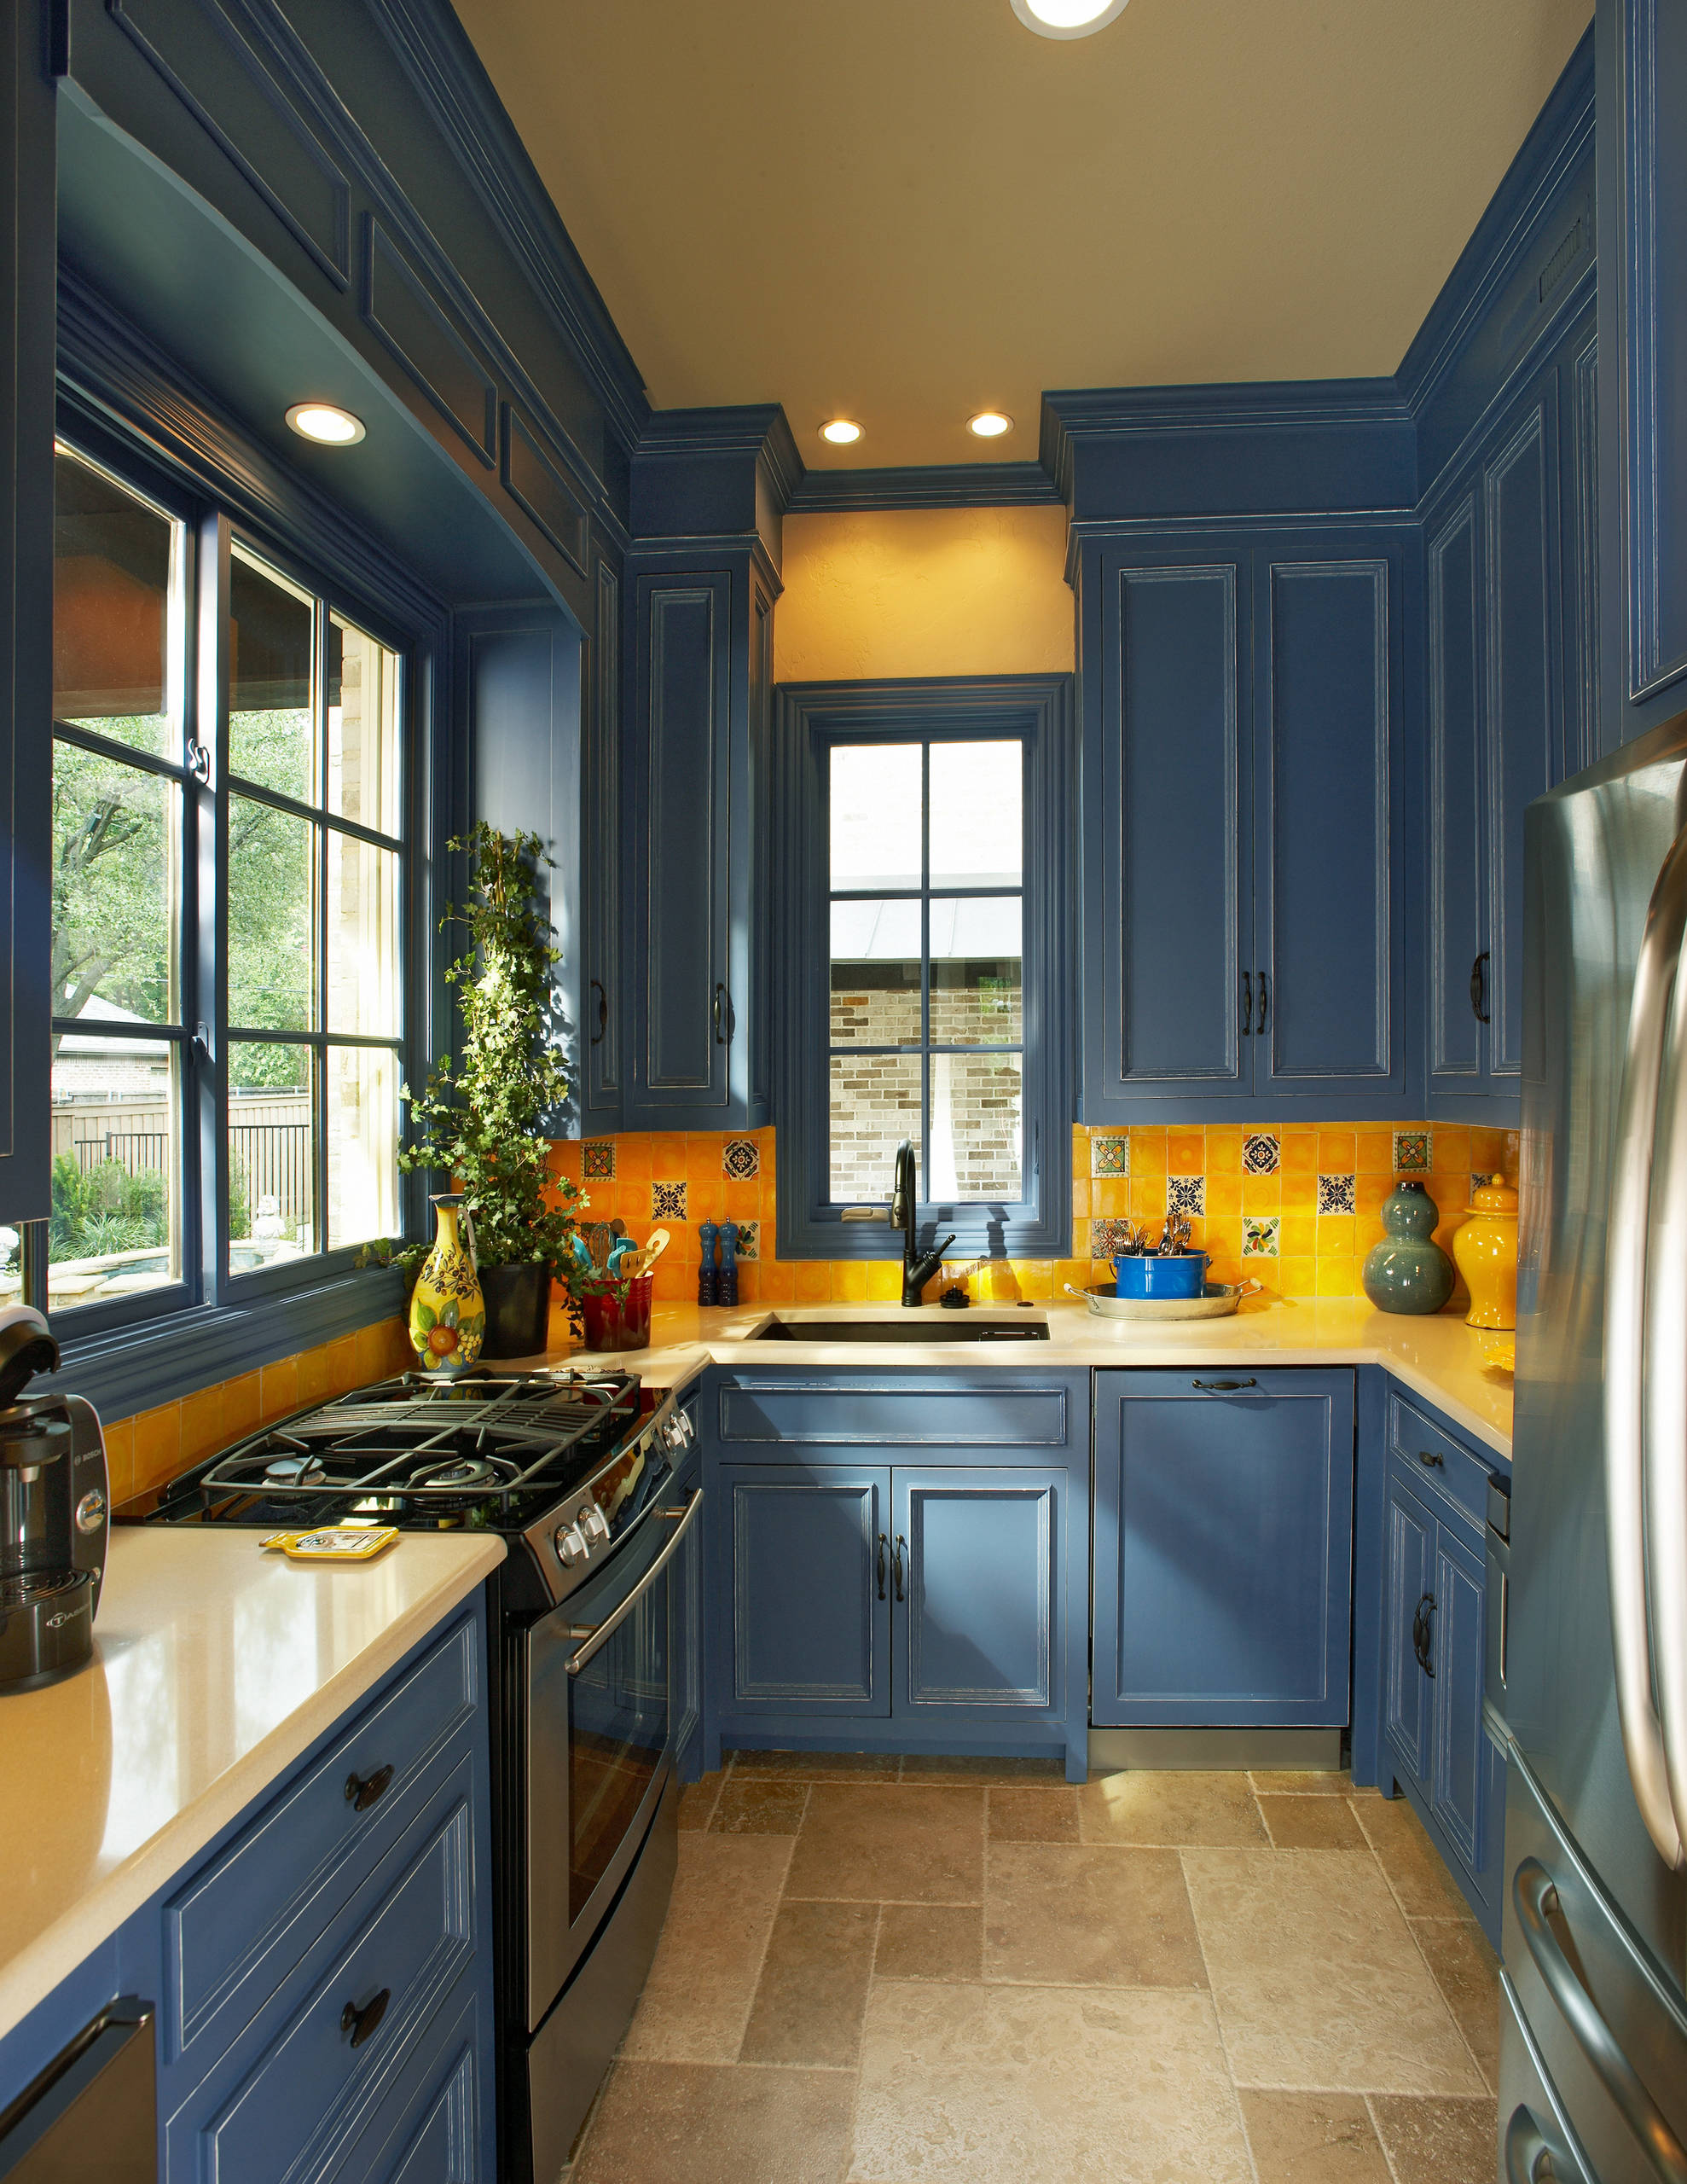 75 Beautiful Kitchen With Blue Cabinets And Yellow Backsplash Pictures Ideas April 2021 Houzz